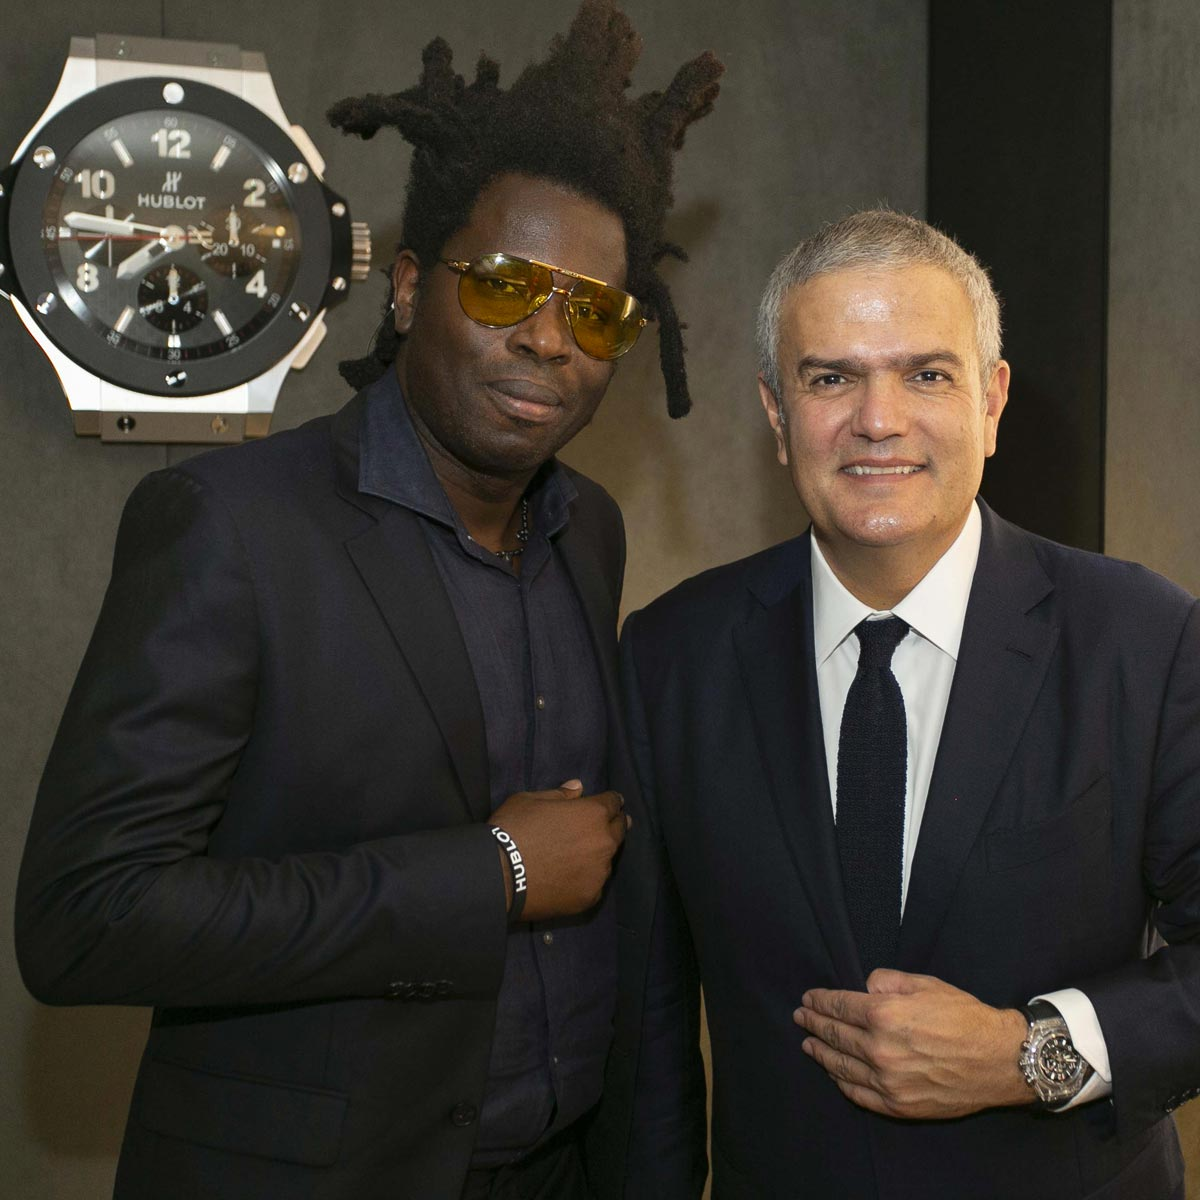 The Watch Quote: Photo - Hublot opens London flagship boutique  in the presence of Lara Stone, Dina Asher-Smith  and Chelsea FC Players